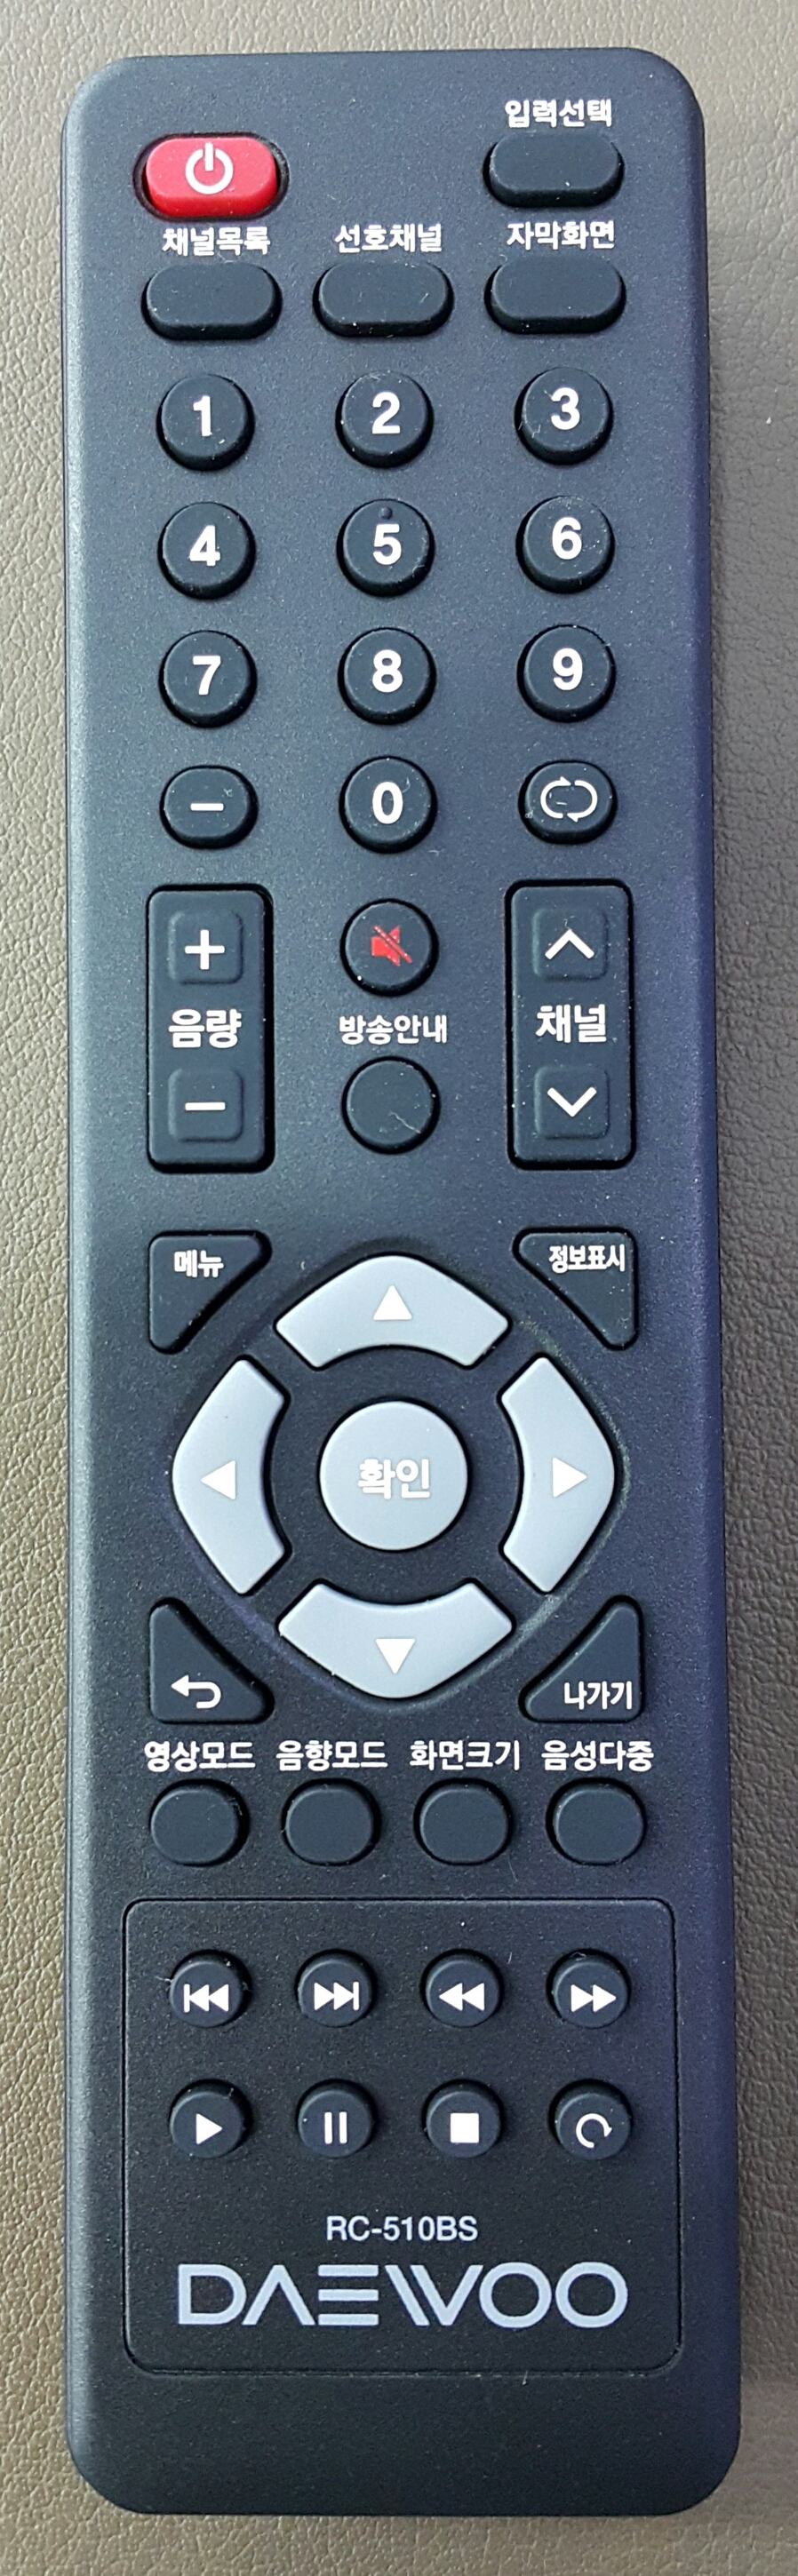 DAEWOO_RC-510BS_M28D4 651A_TV.DAEWOO_00005_cover.png